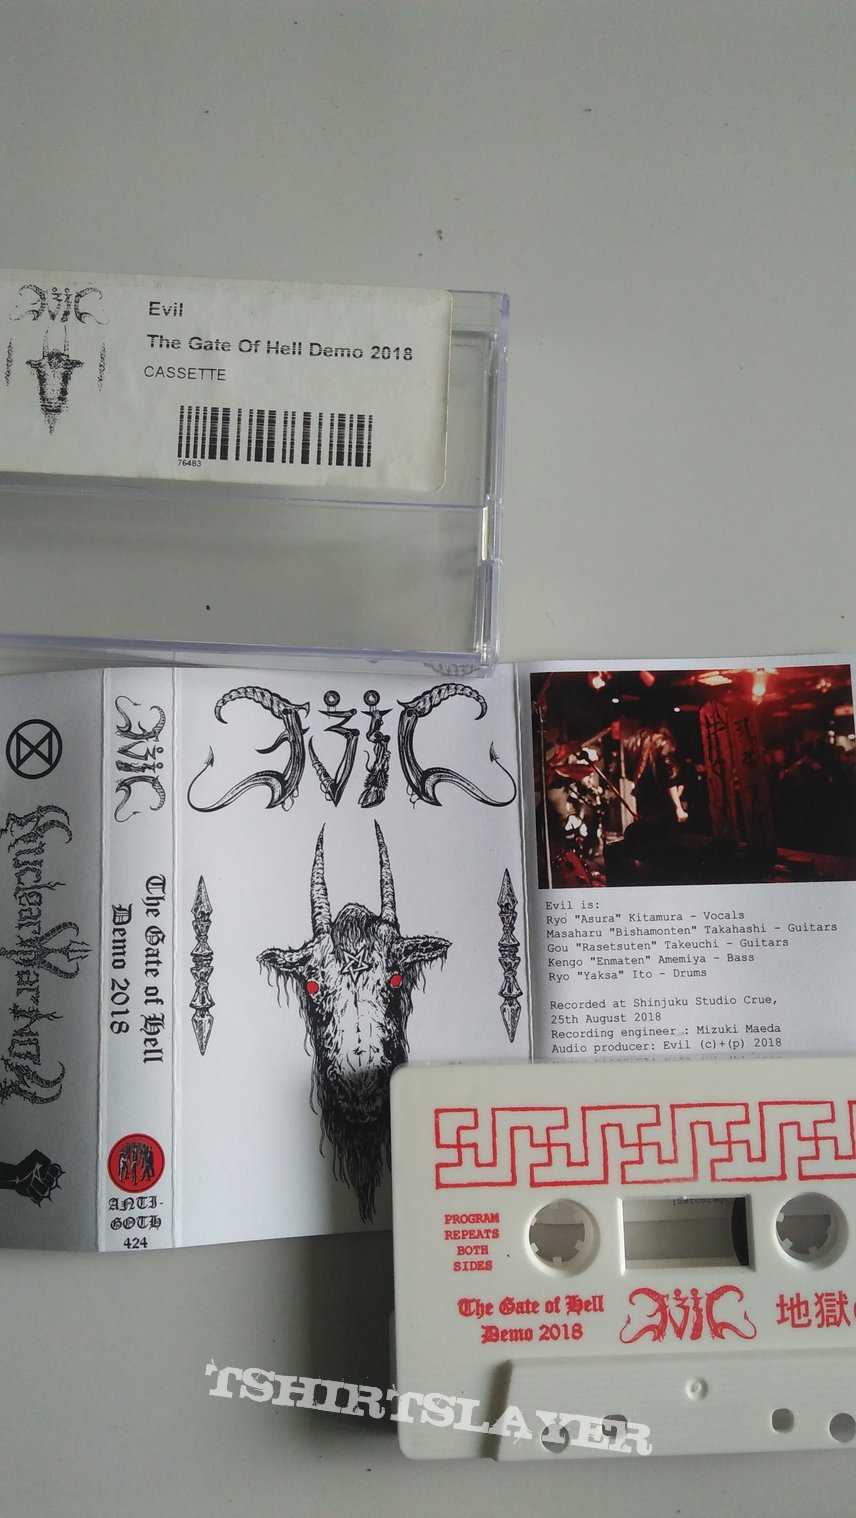 Evil (Japan) - The Gate Of Hell demo 2018